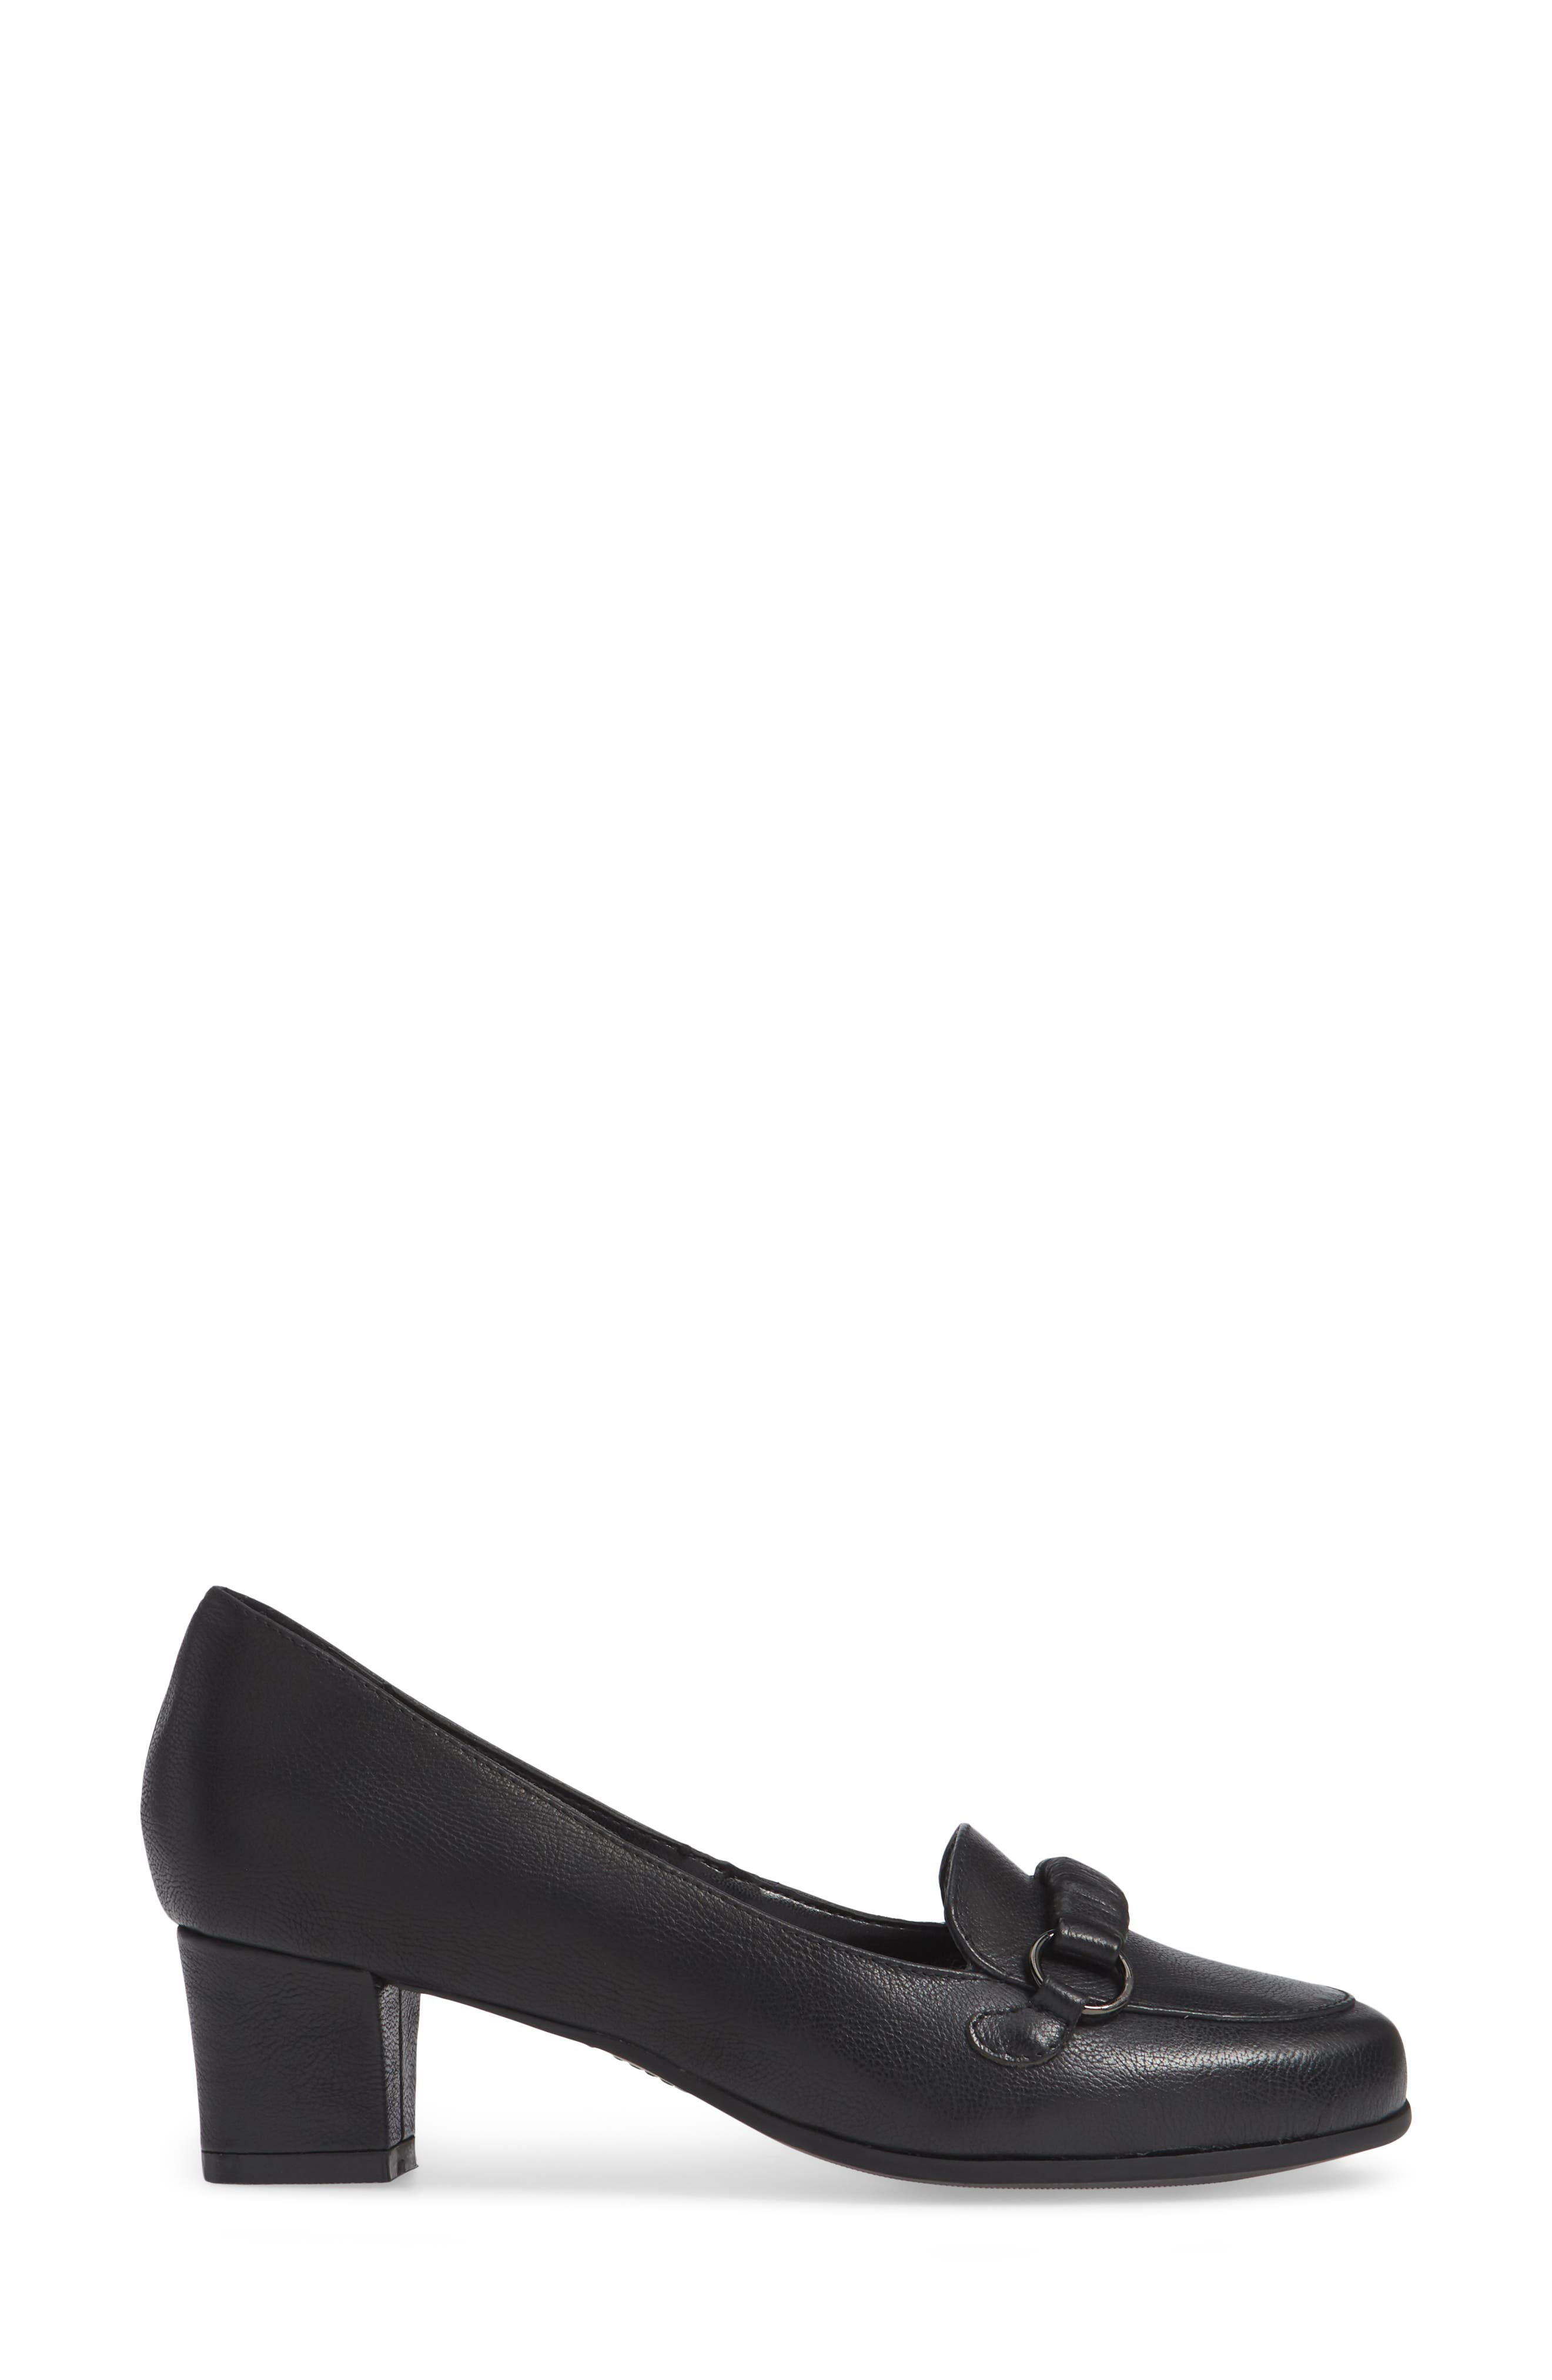 Perky Loafer Pump,                             Alternate thumbnail 3, color,                             BLACK LEATHER